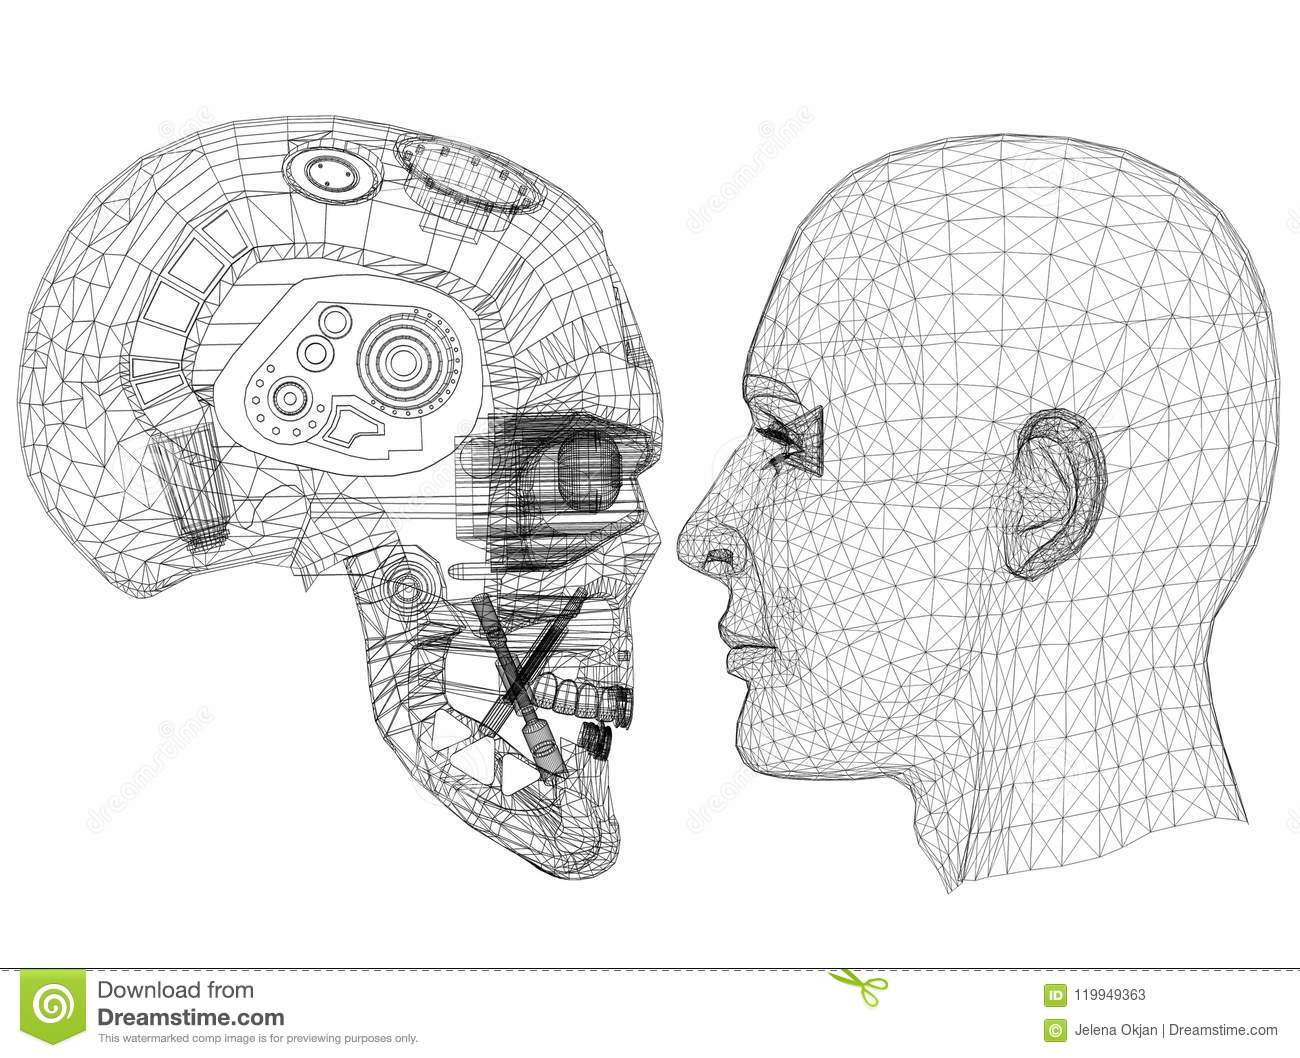 Robot and Human Head design - Architect Blueprint - isolated